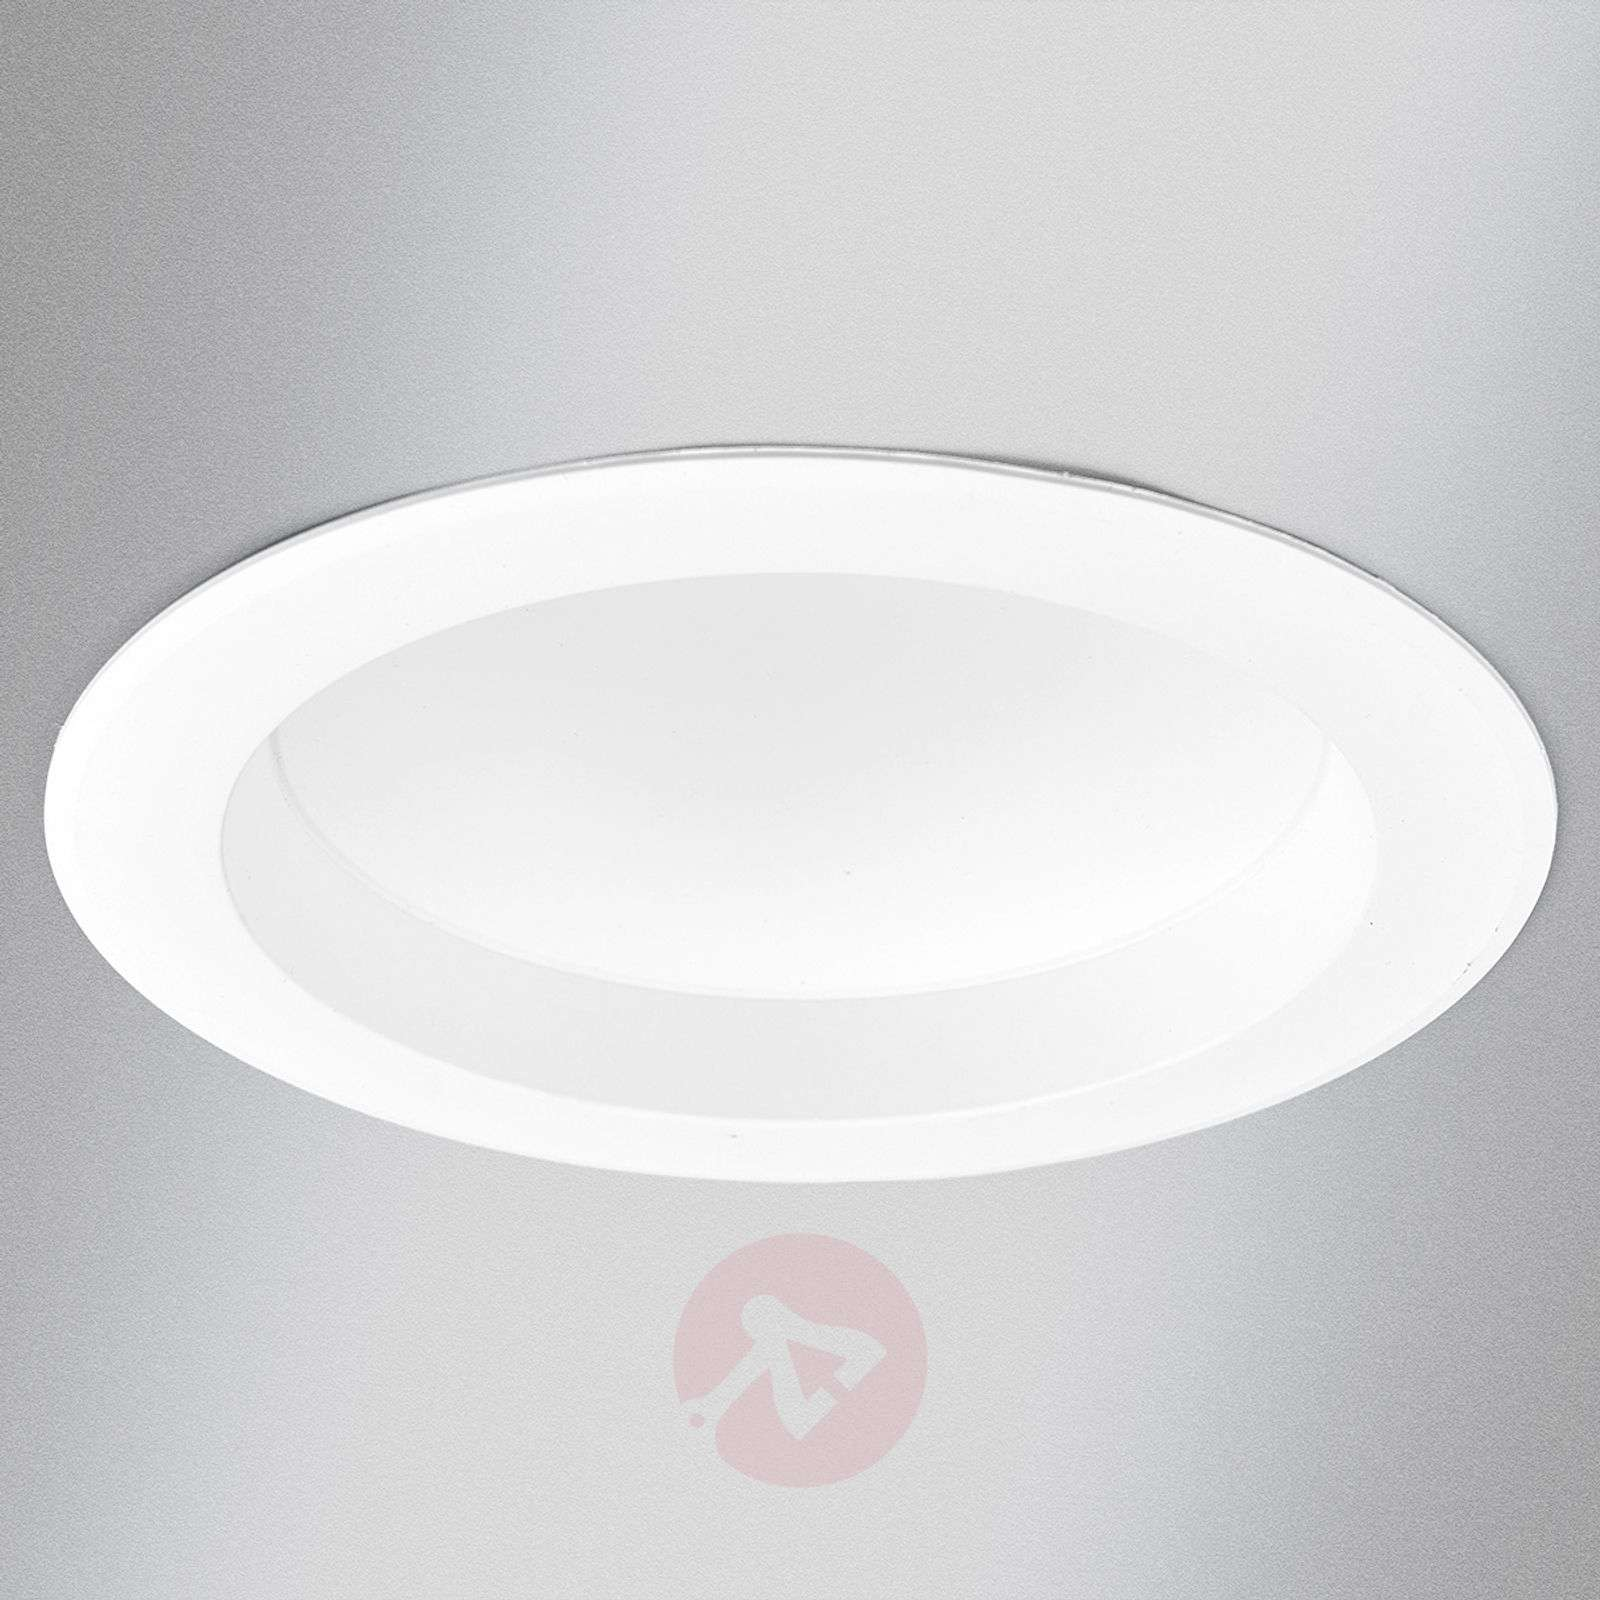 Led recessed ceiling light arian 174 cm 15 w lights led recessed ceiling light arian 174 cm 15 w 9978011 03 mozeypictures Gallery